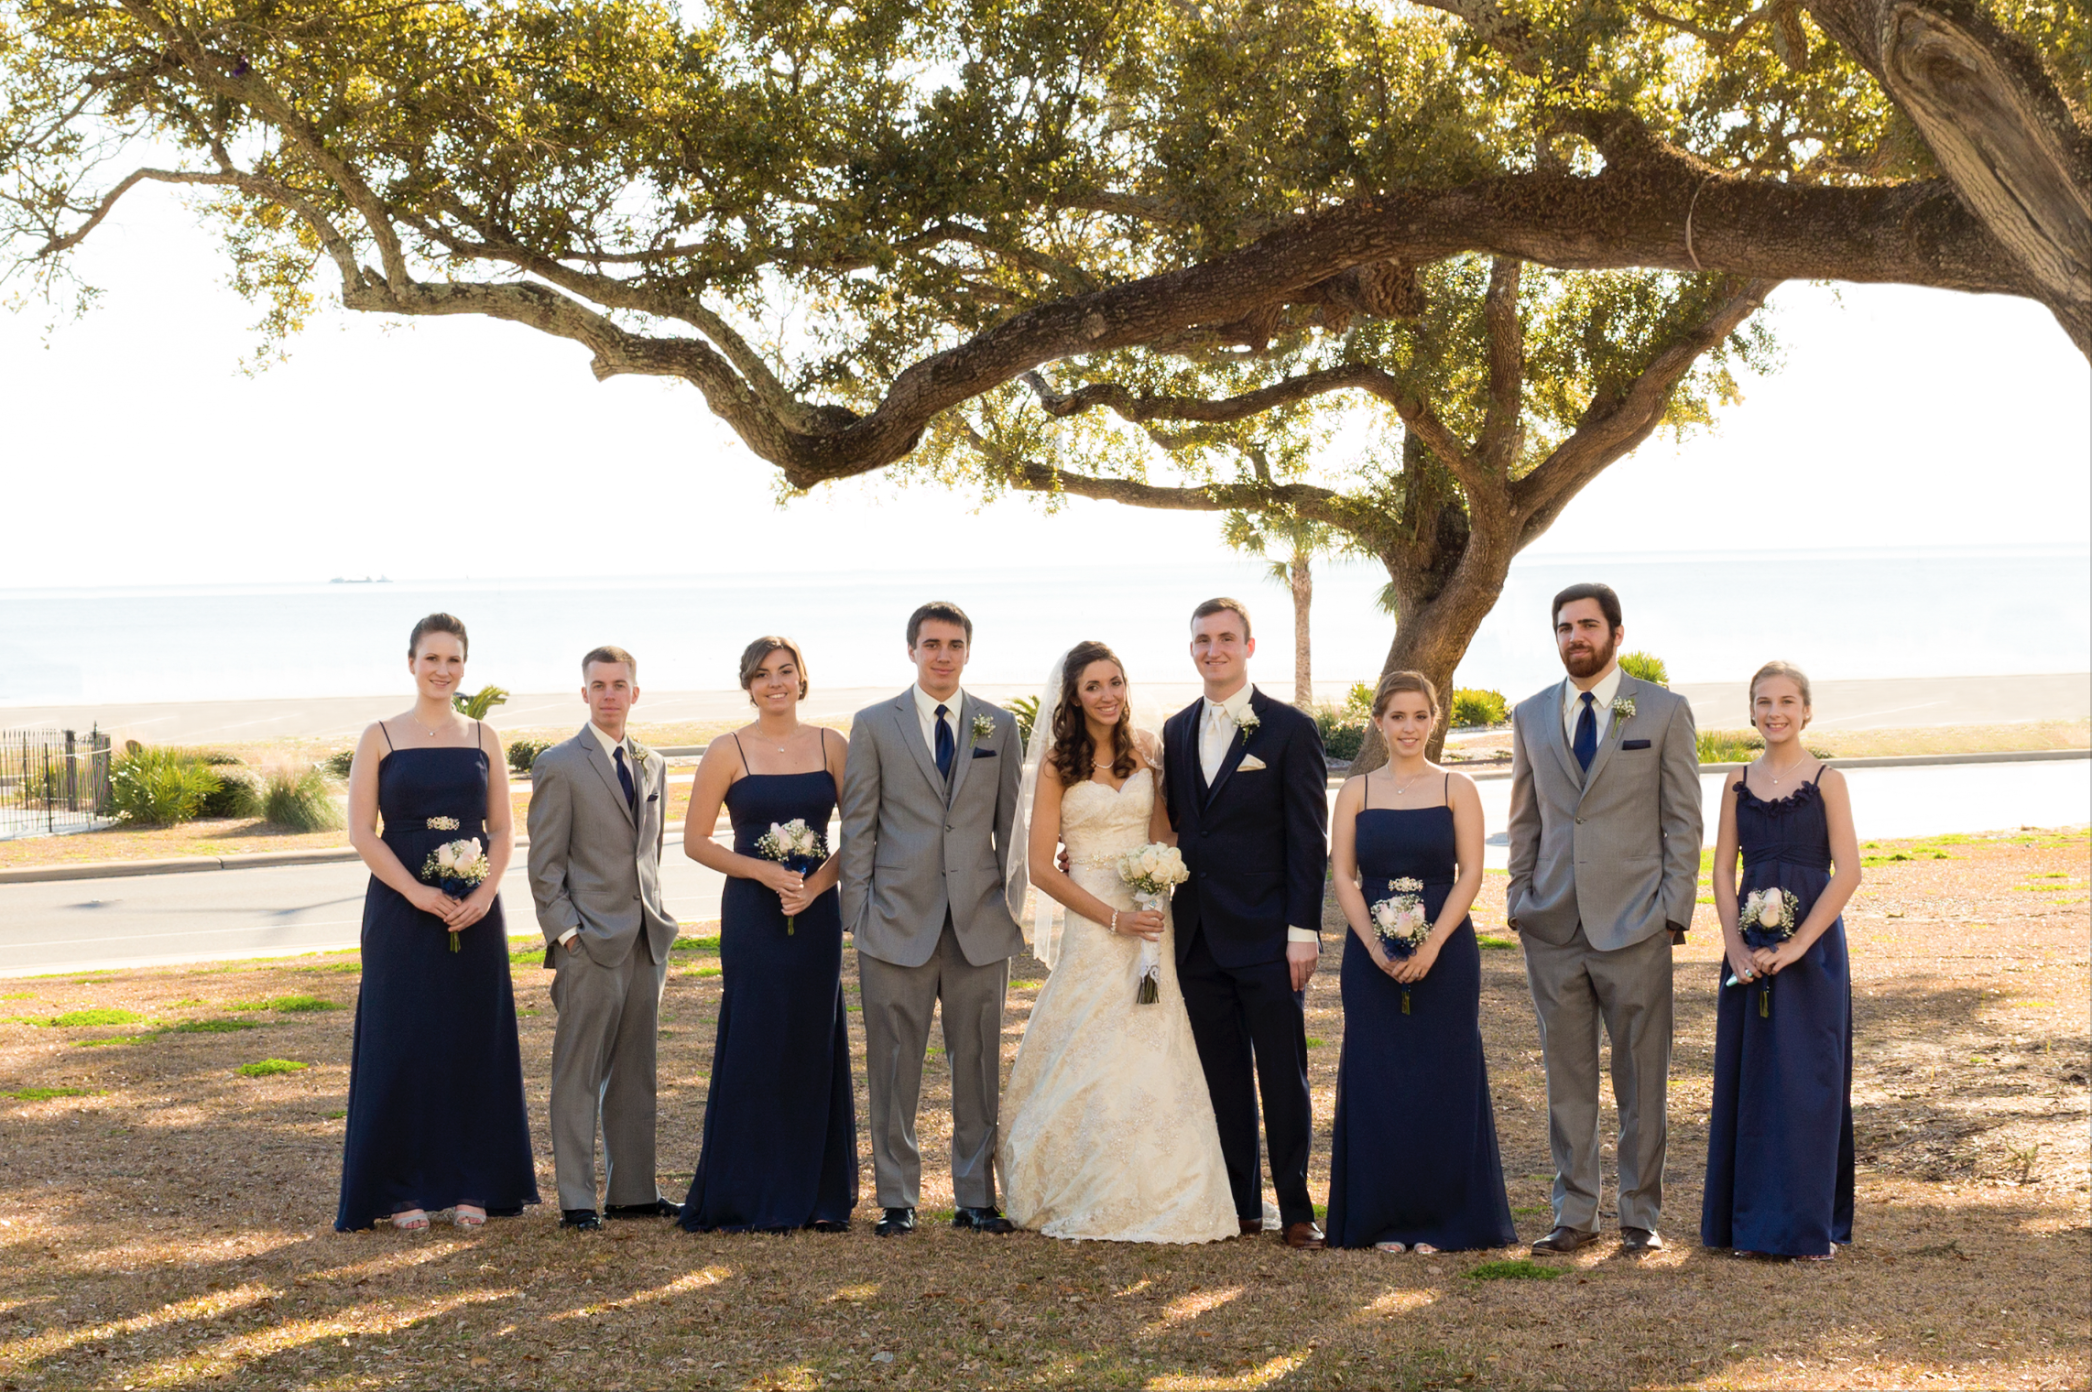 outdoor wedding party group photo with live oak tree